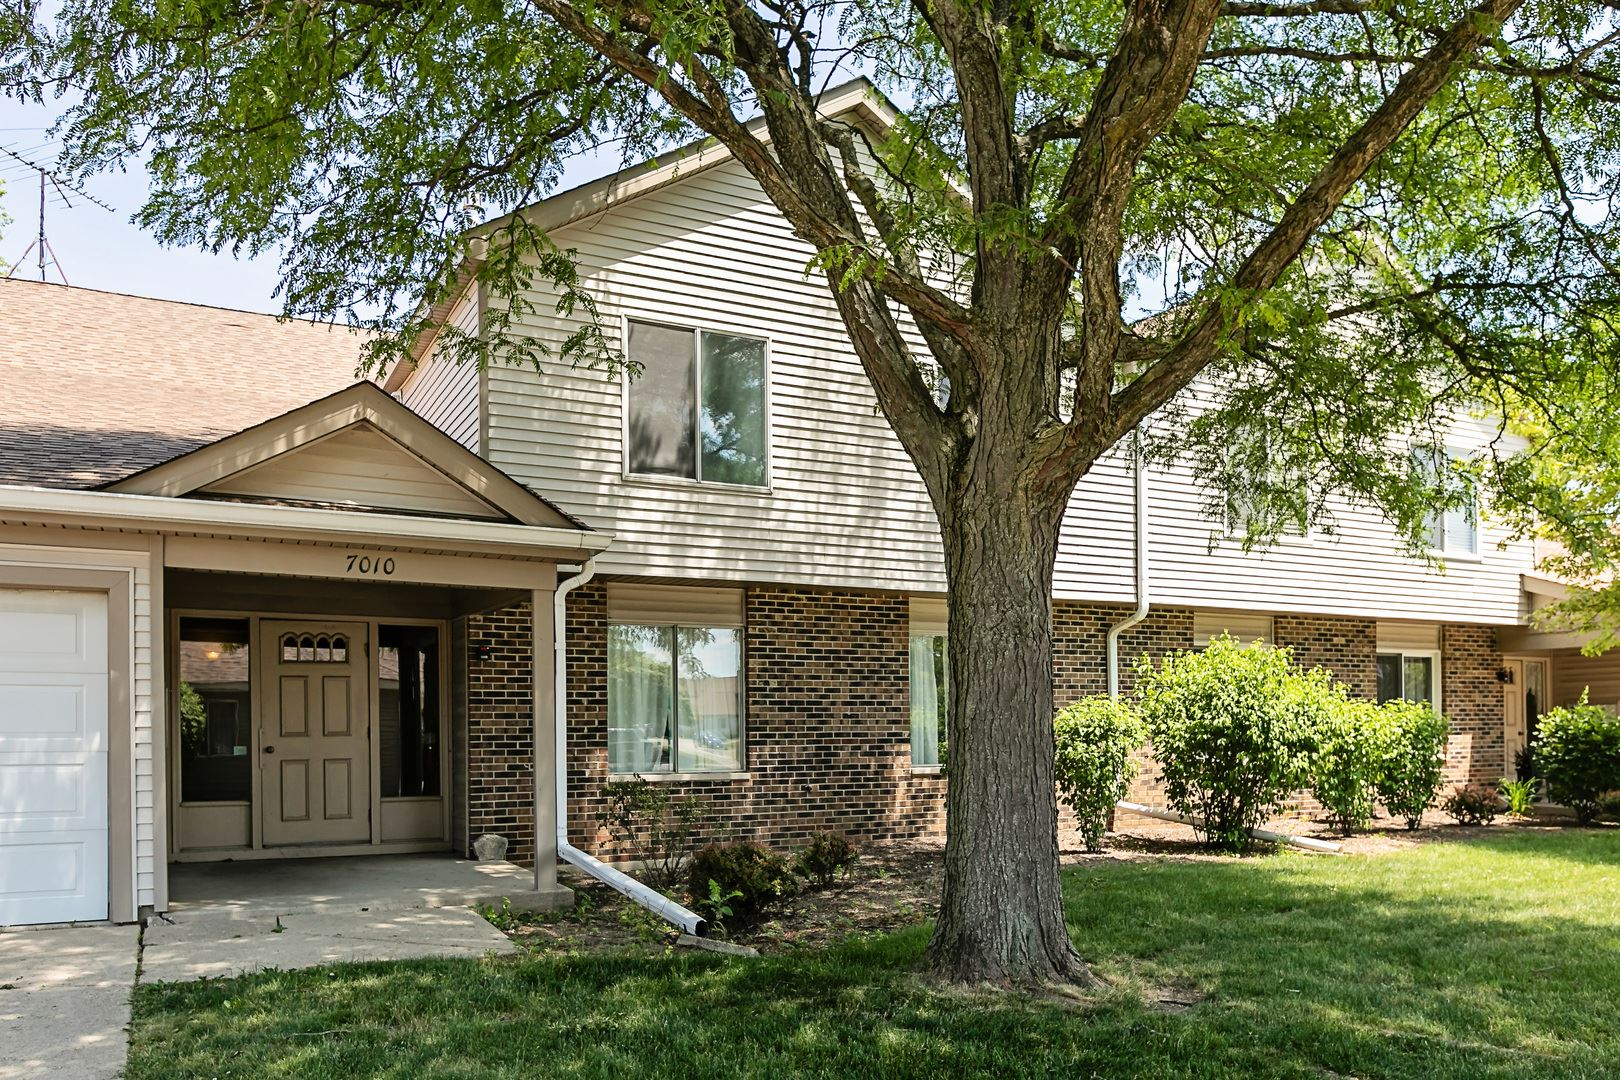 7010 Newport Drive #203, Woodridge, IL 60517 - #: 10751711